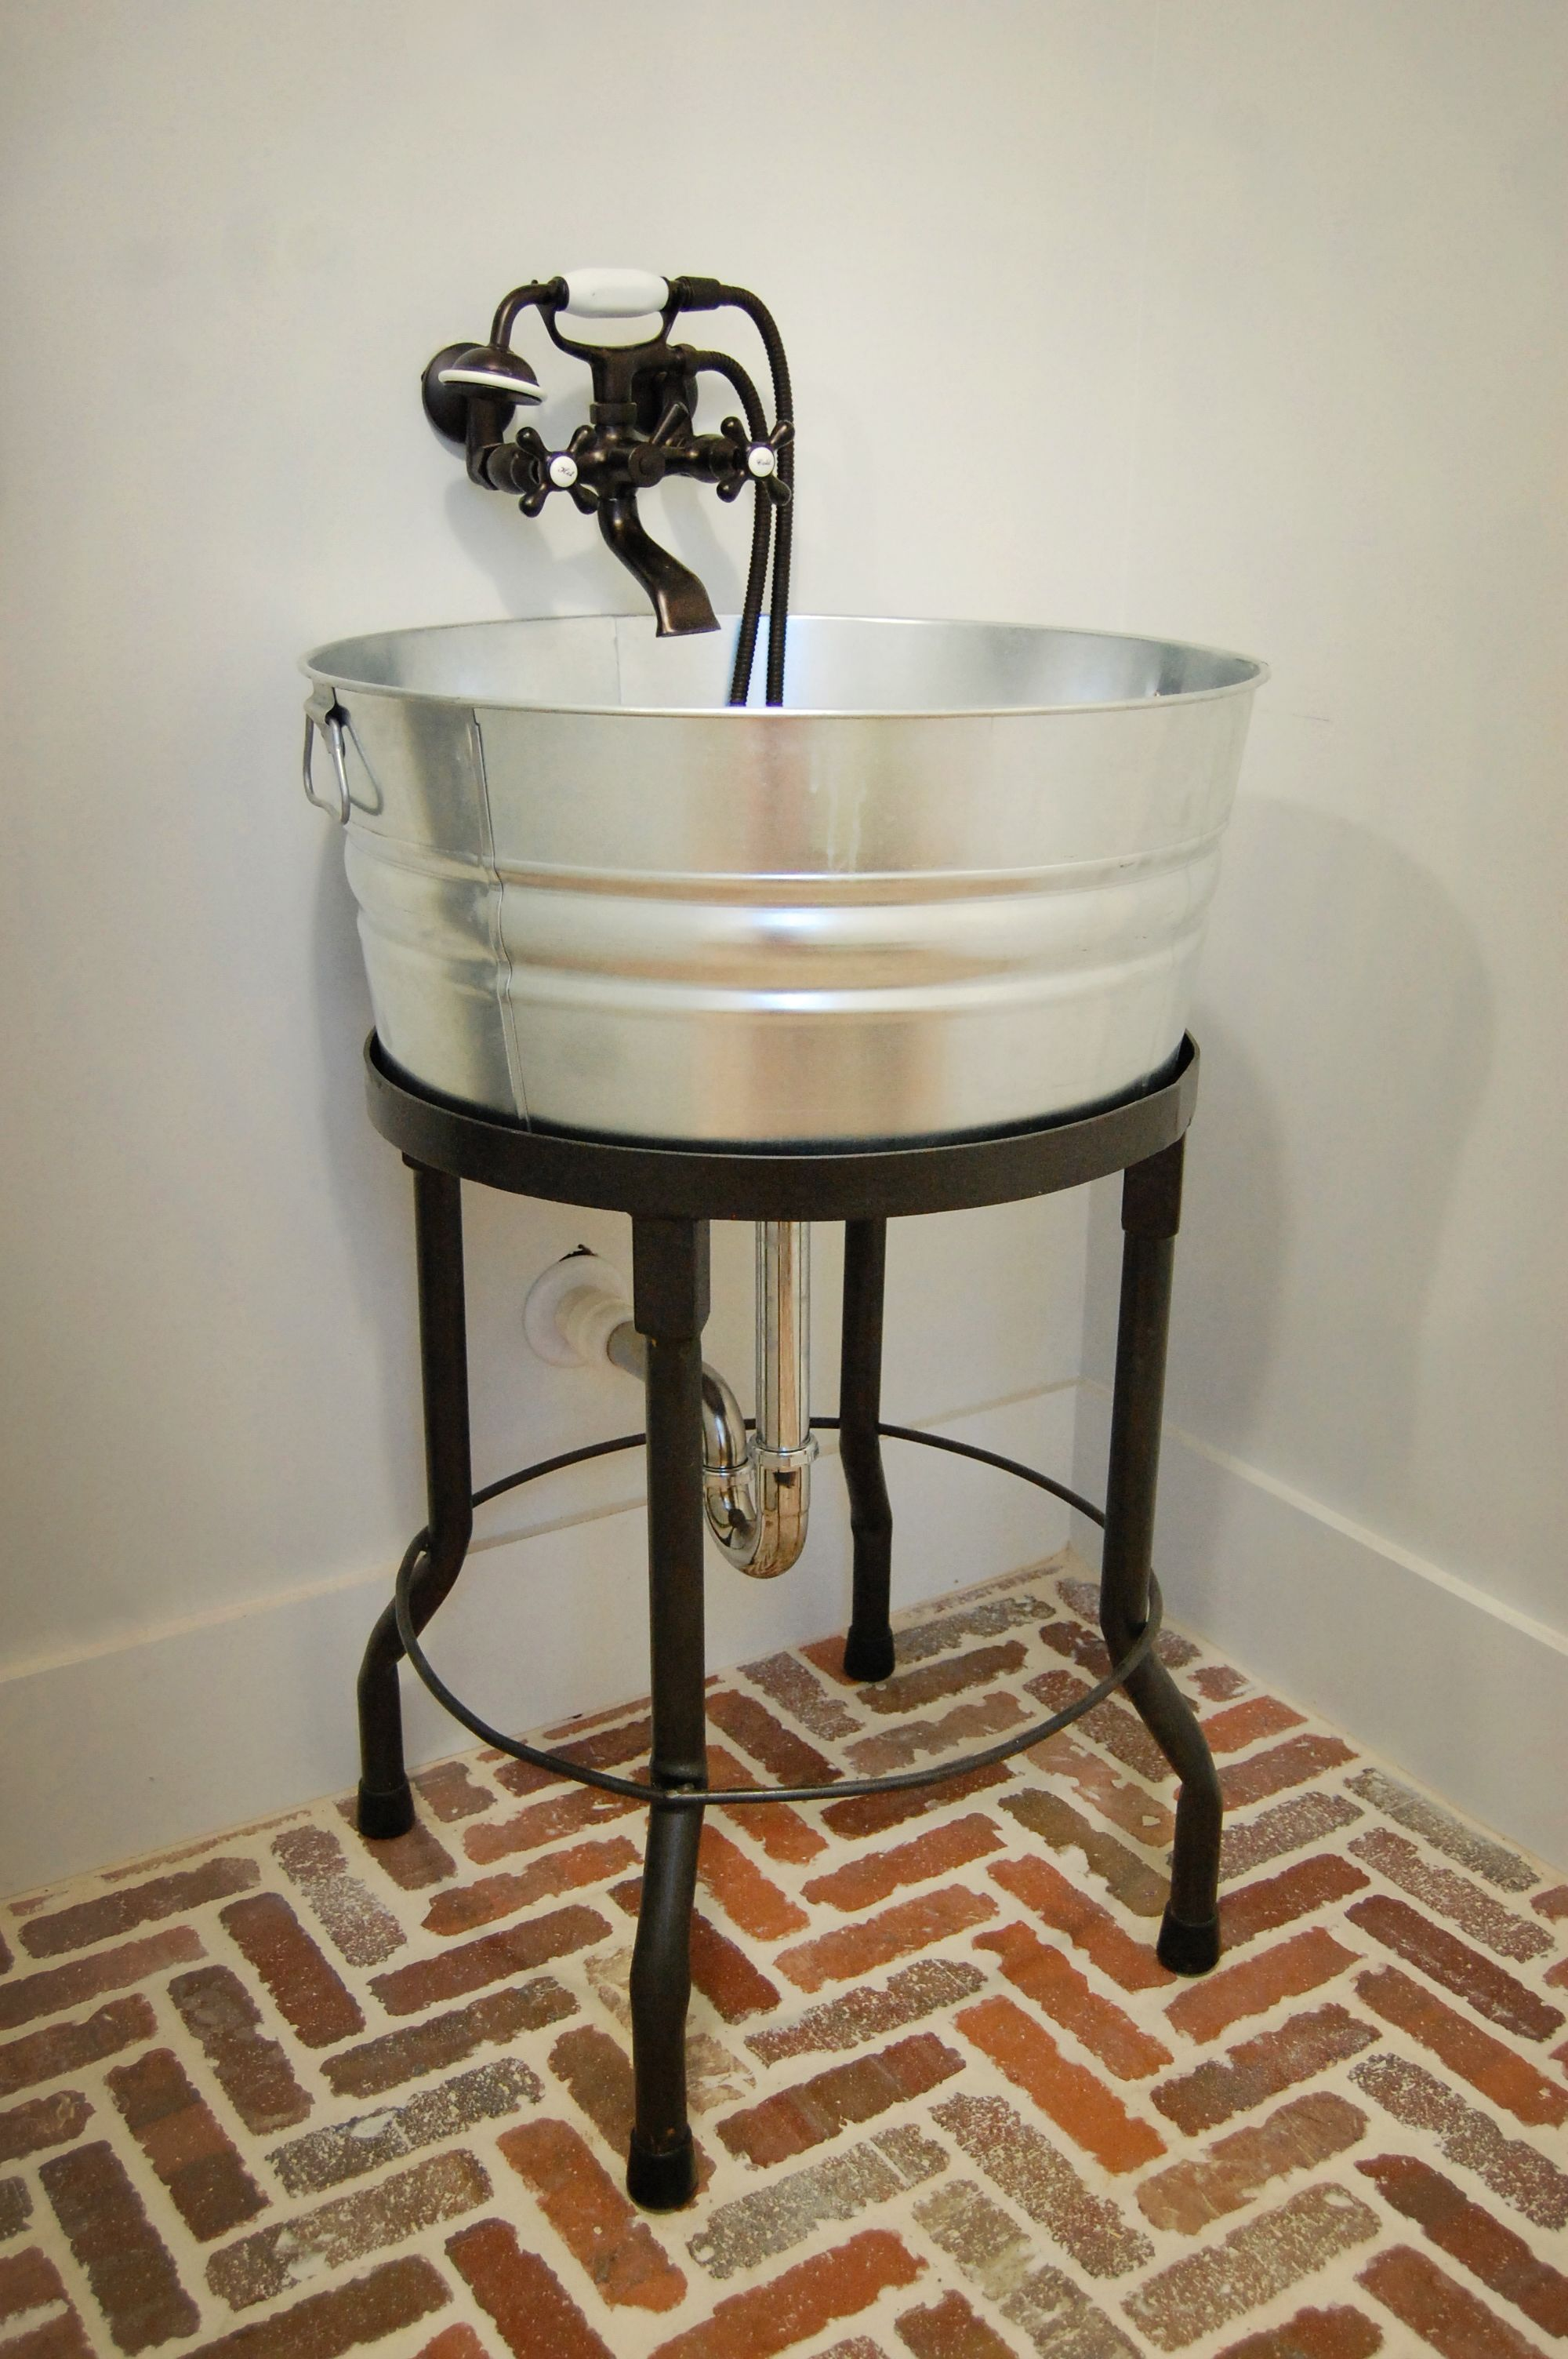 Custom Made Galvanized Tub Laundry Sink Designed By The